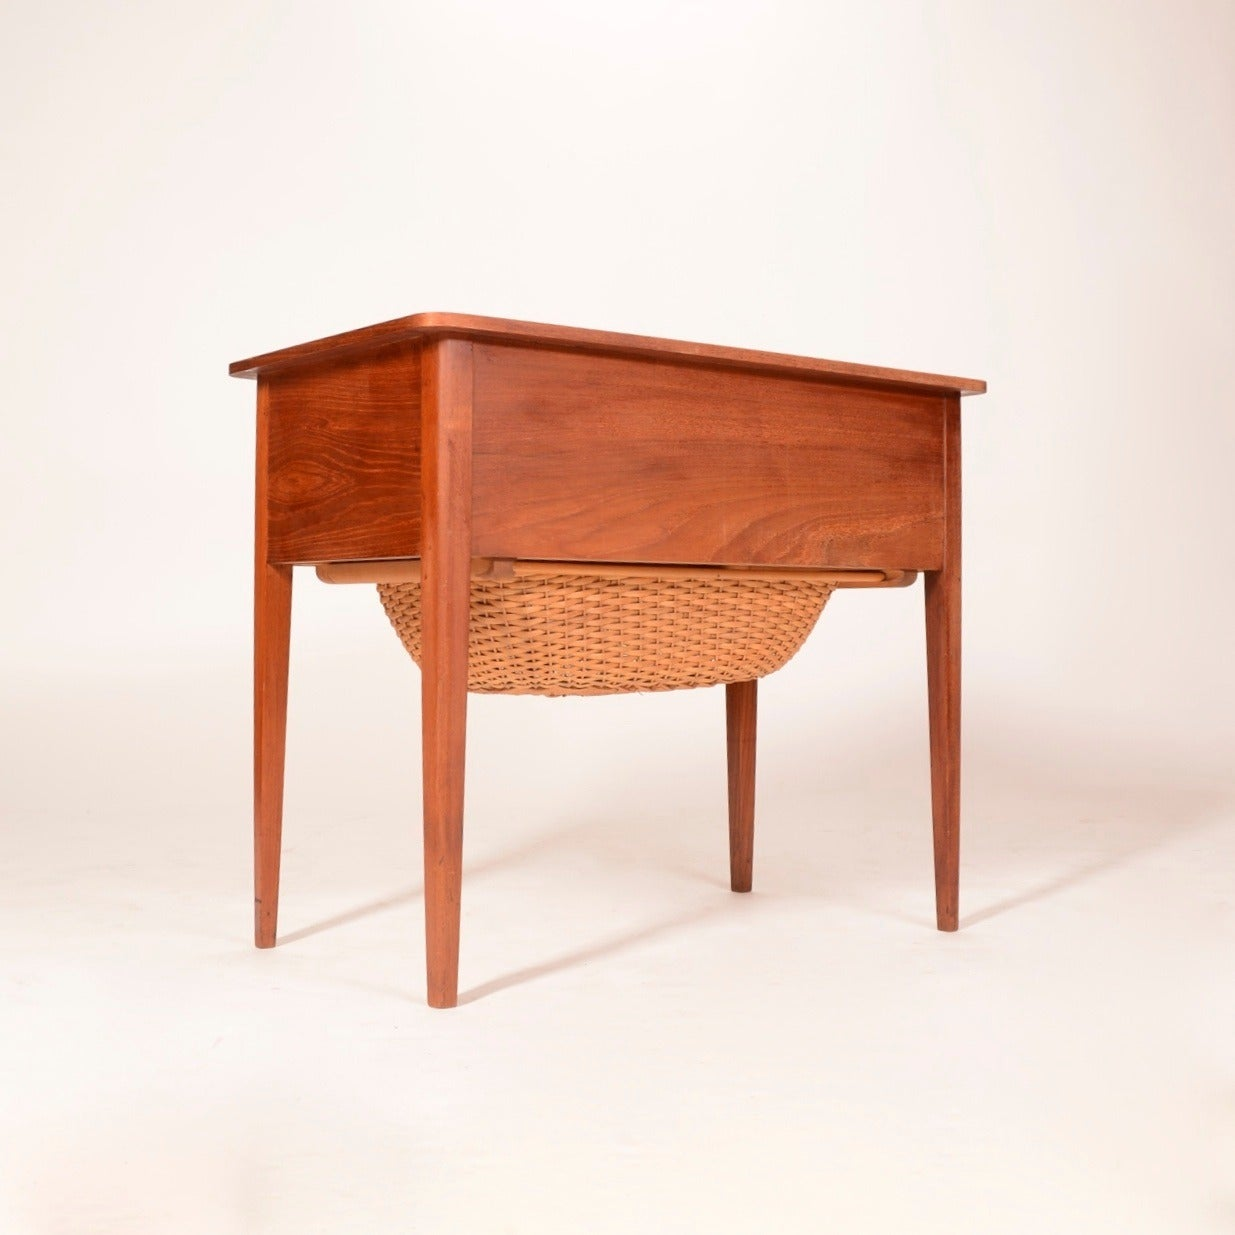 Danish Modern Sewing Cabinet and Table with Basket For